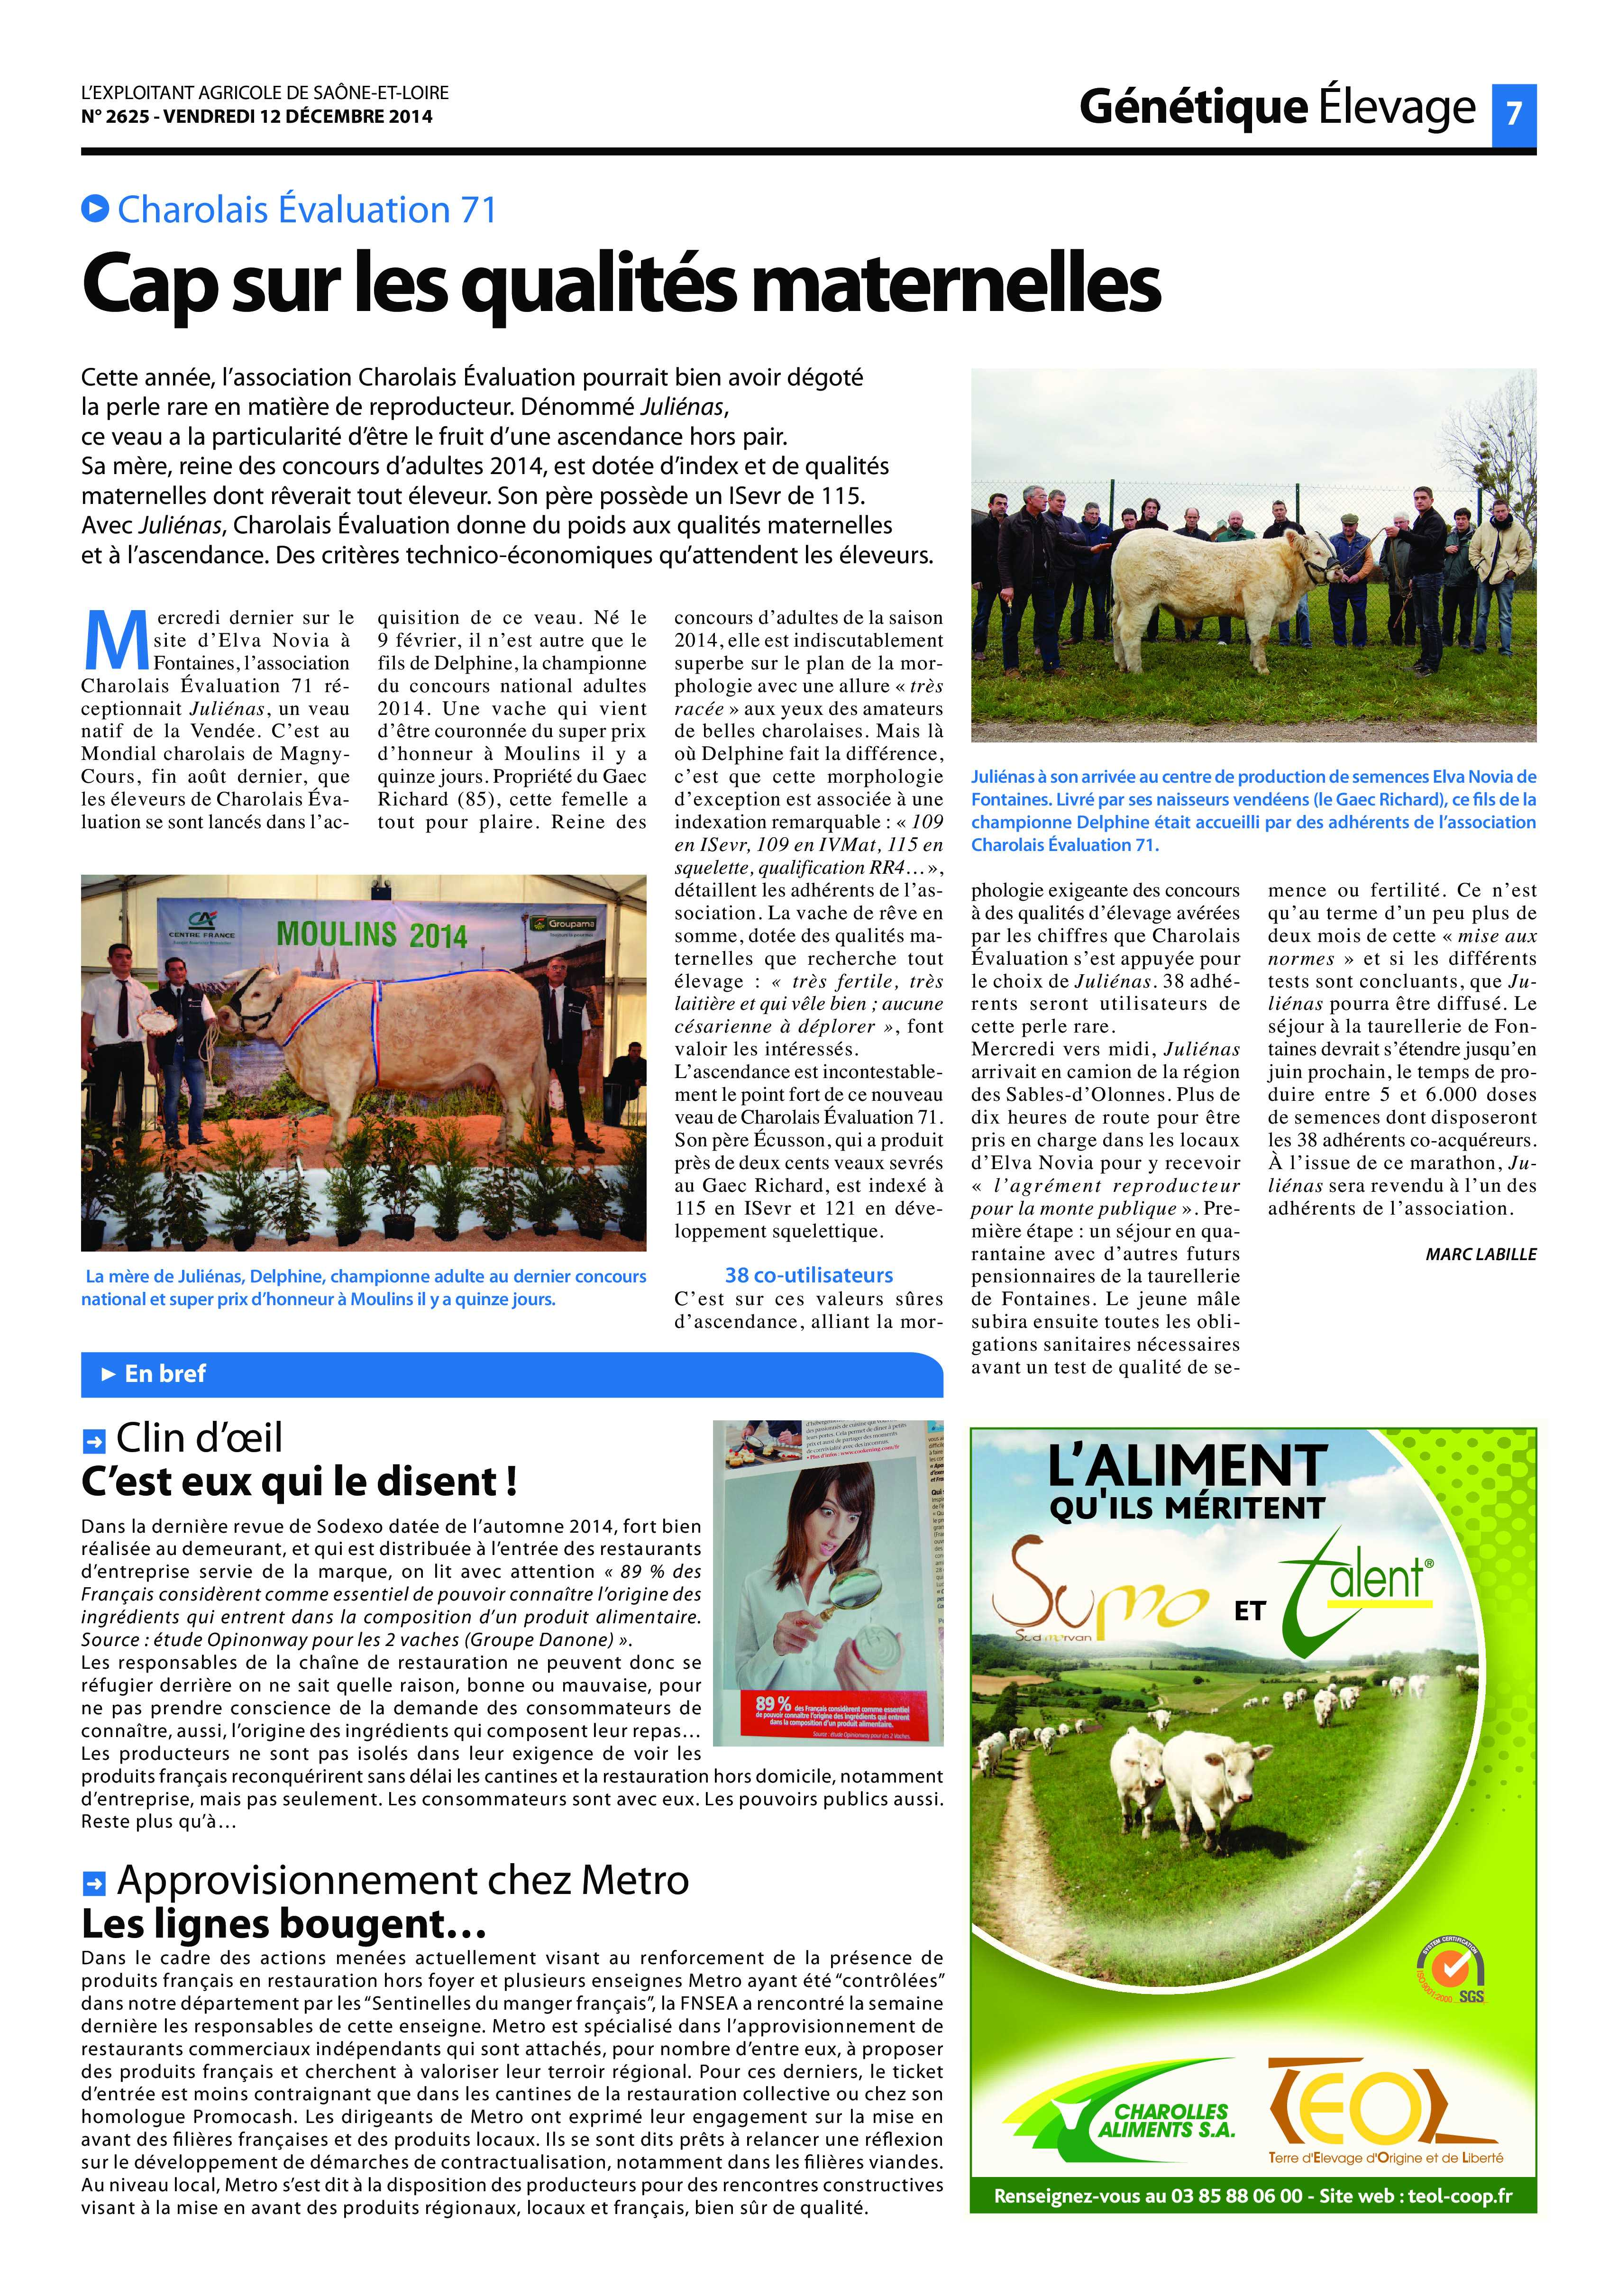 Article_EA_71_12_2014